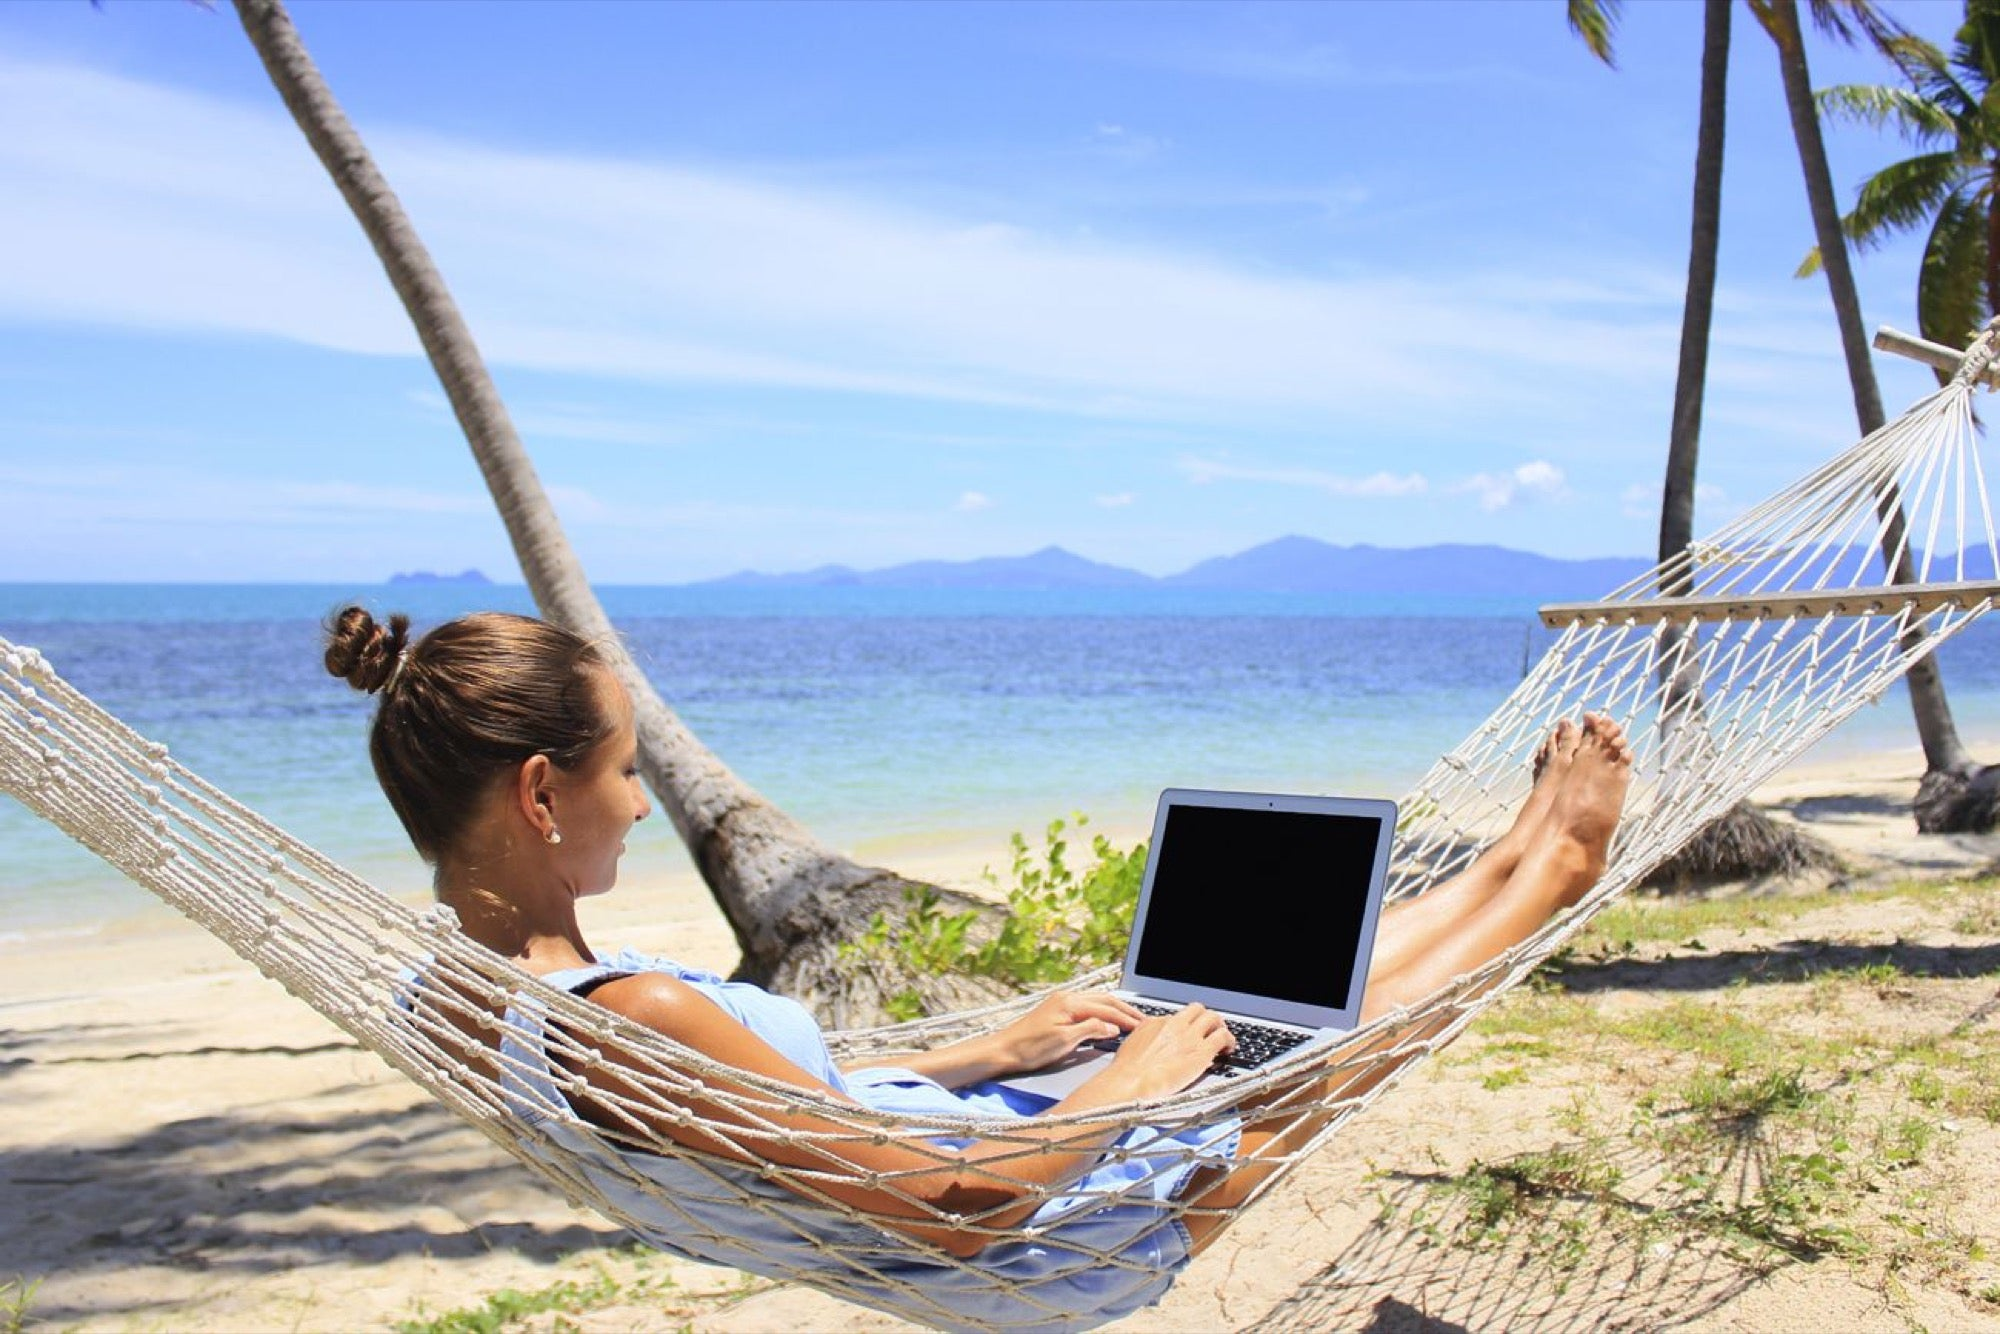 making the choice of living life as a digital nomad